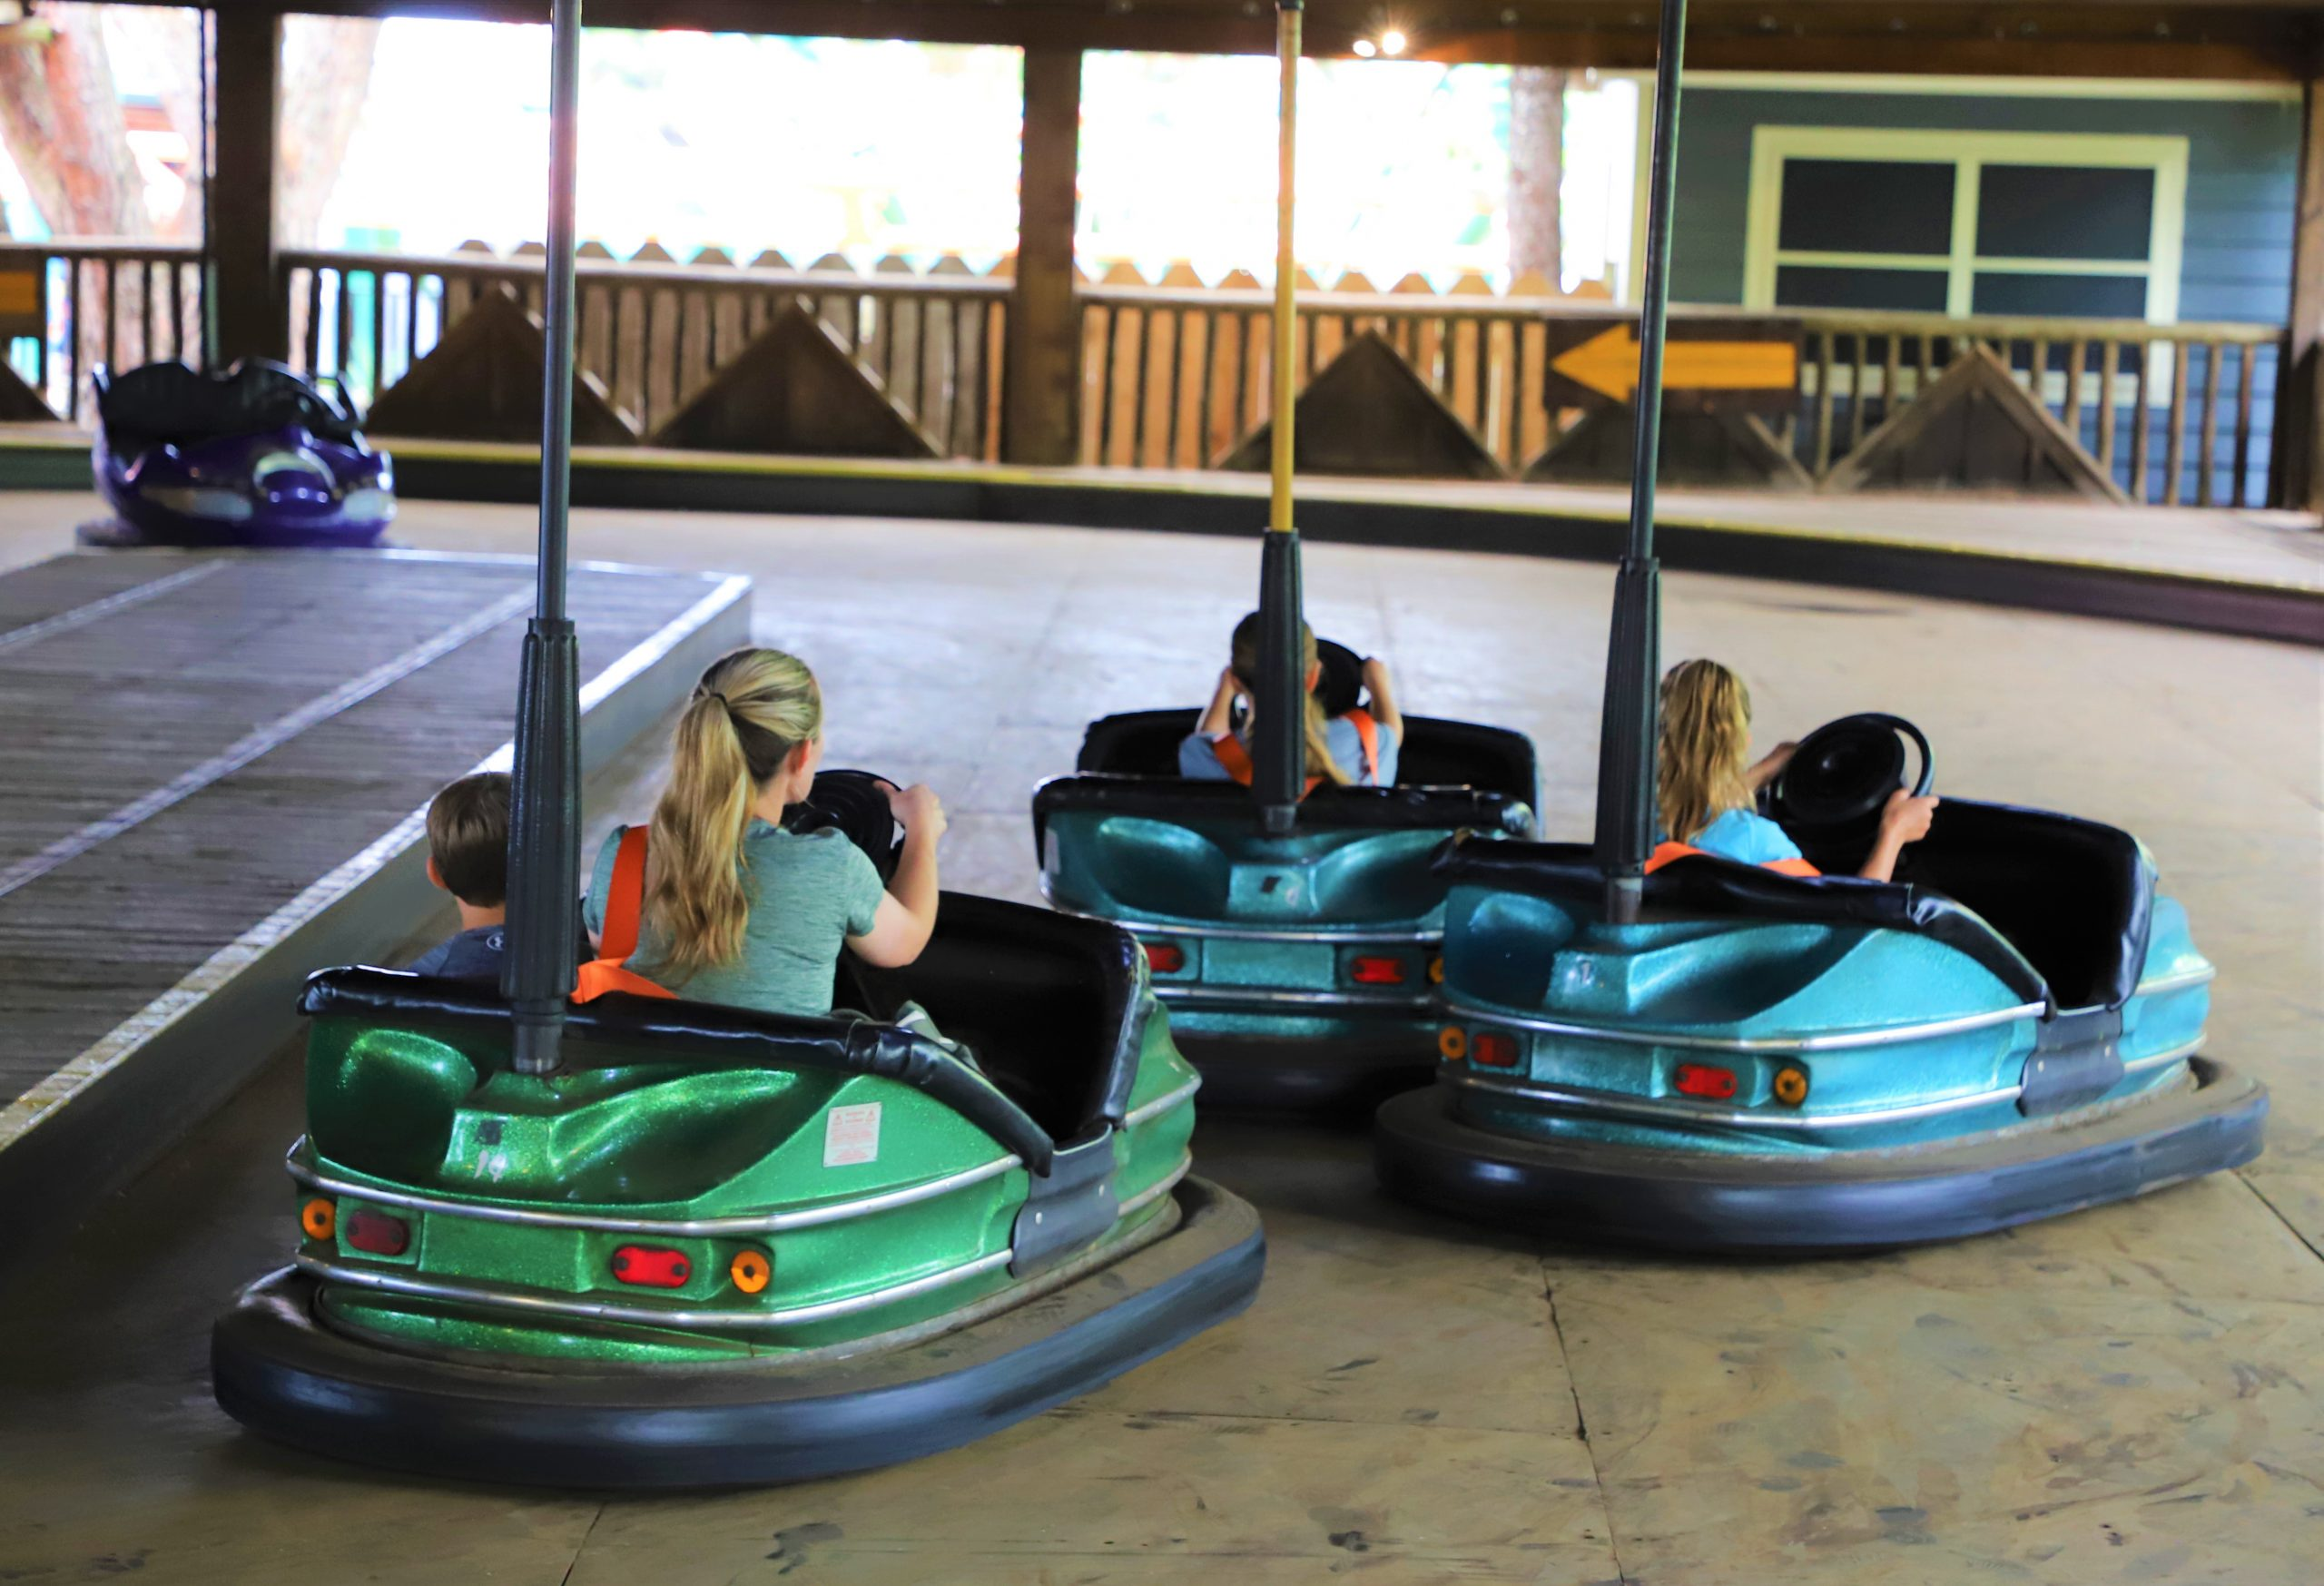 Guests driving bumper cars on Dodge Ems at Six Flags